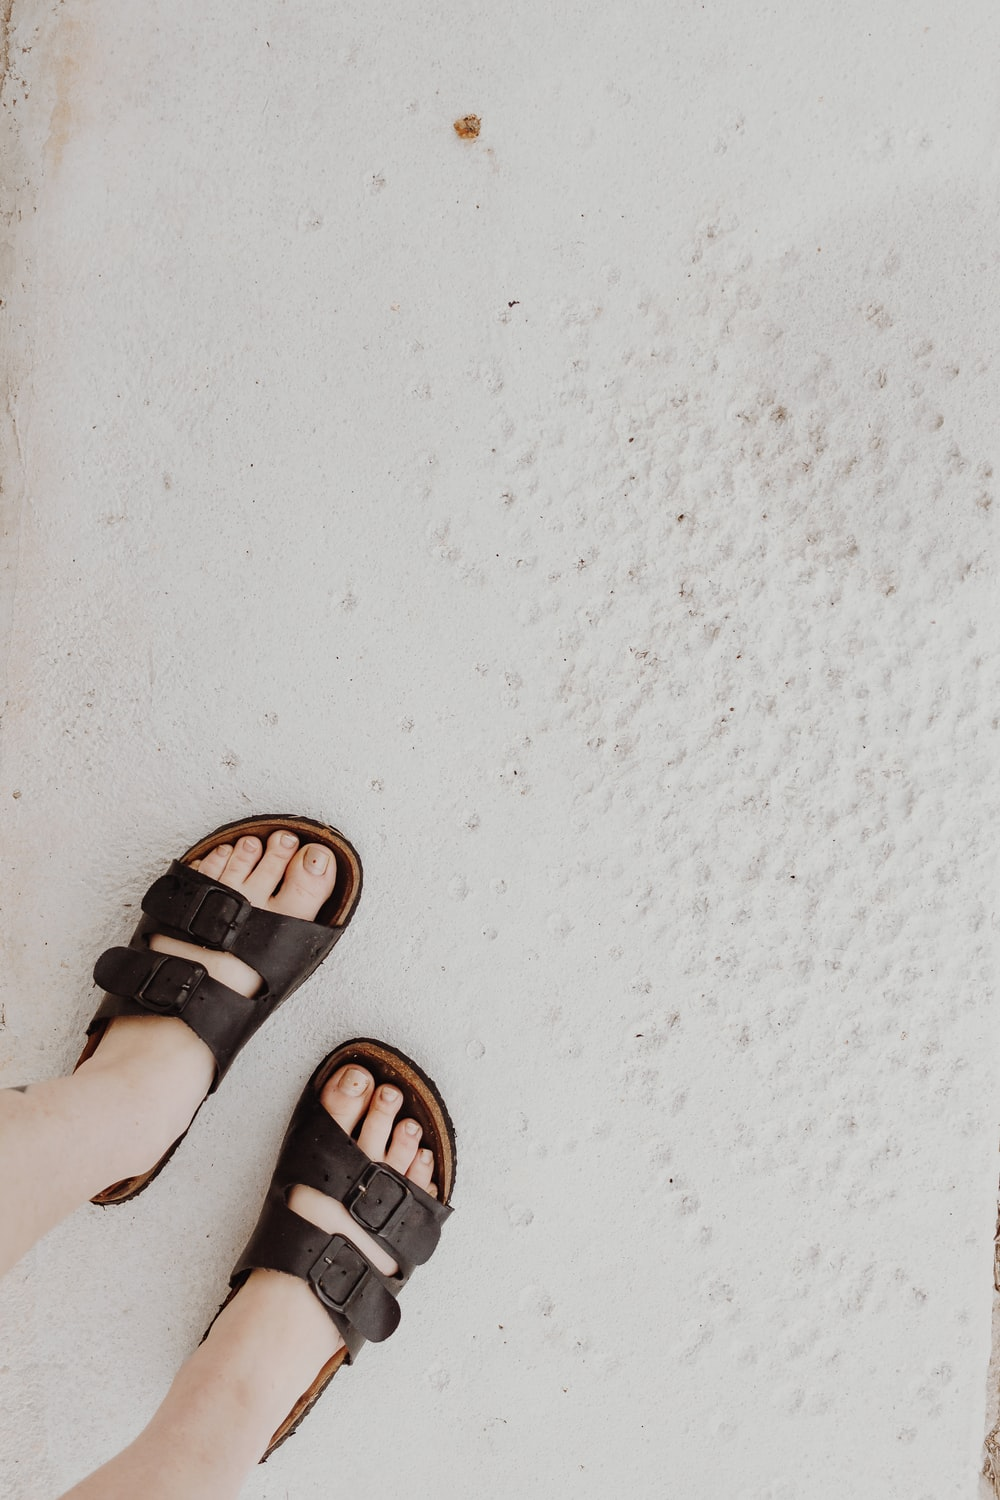 person wearing black leather sandals